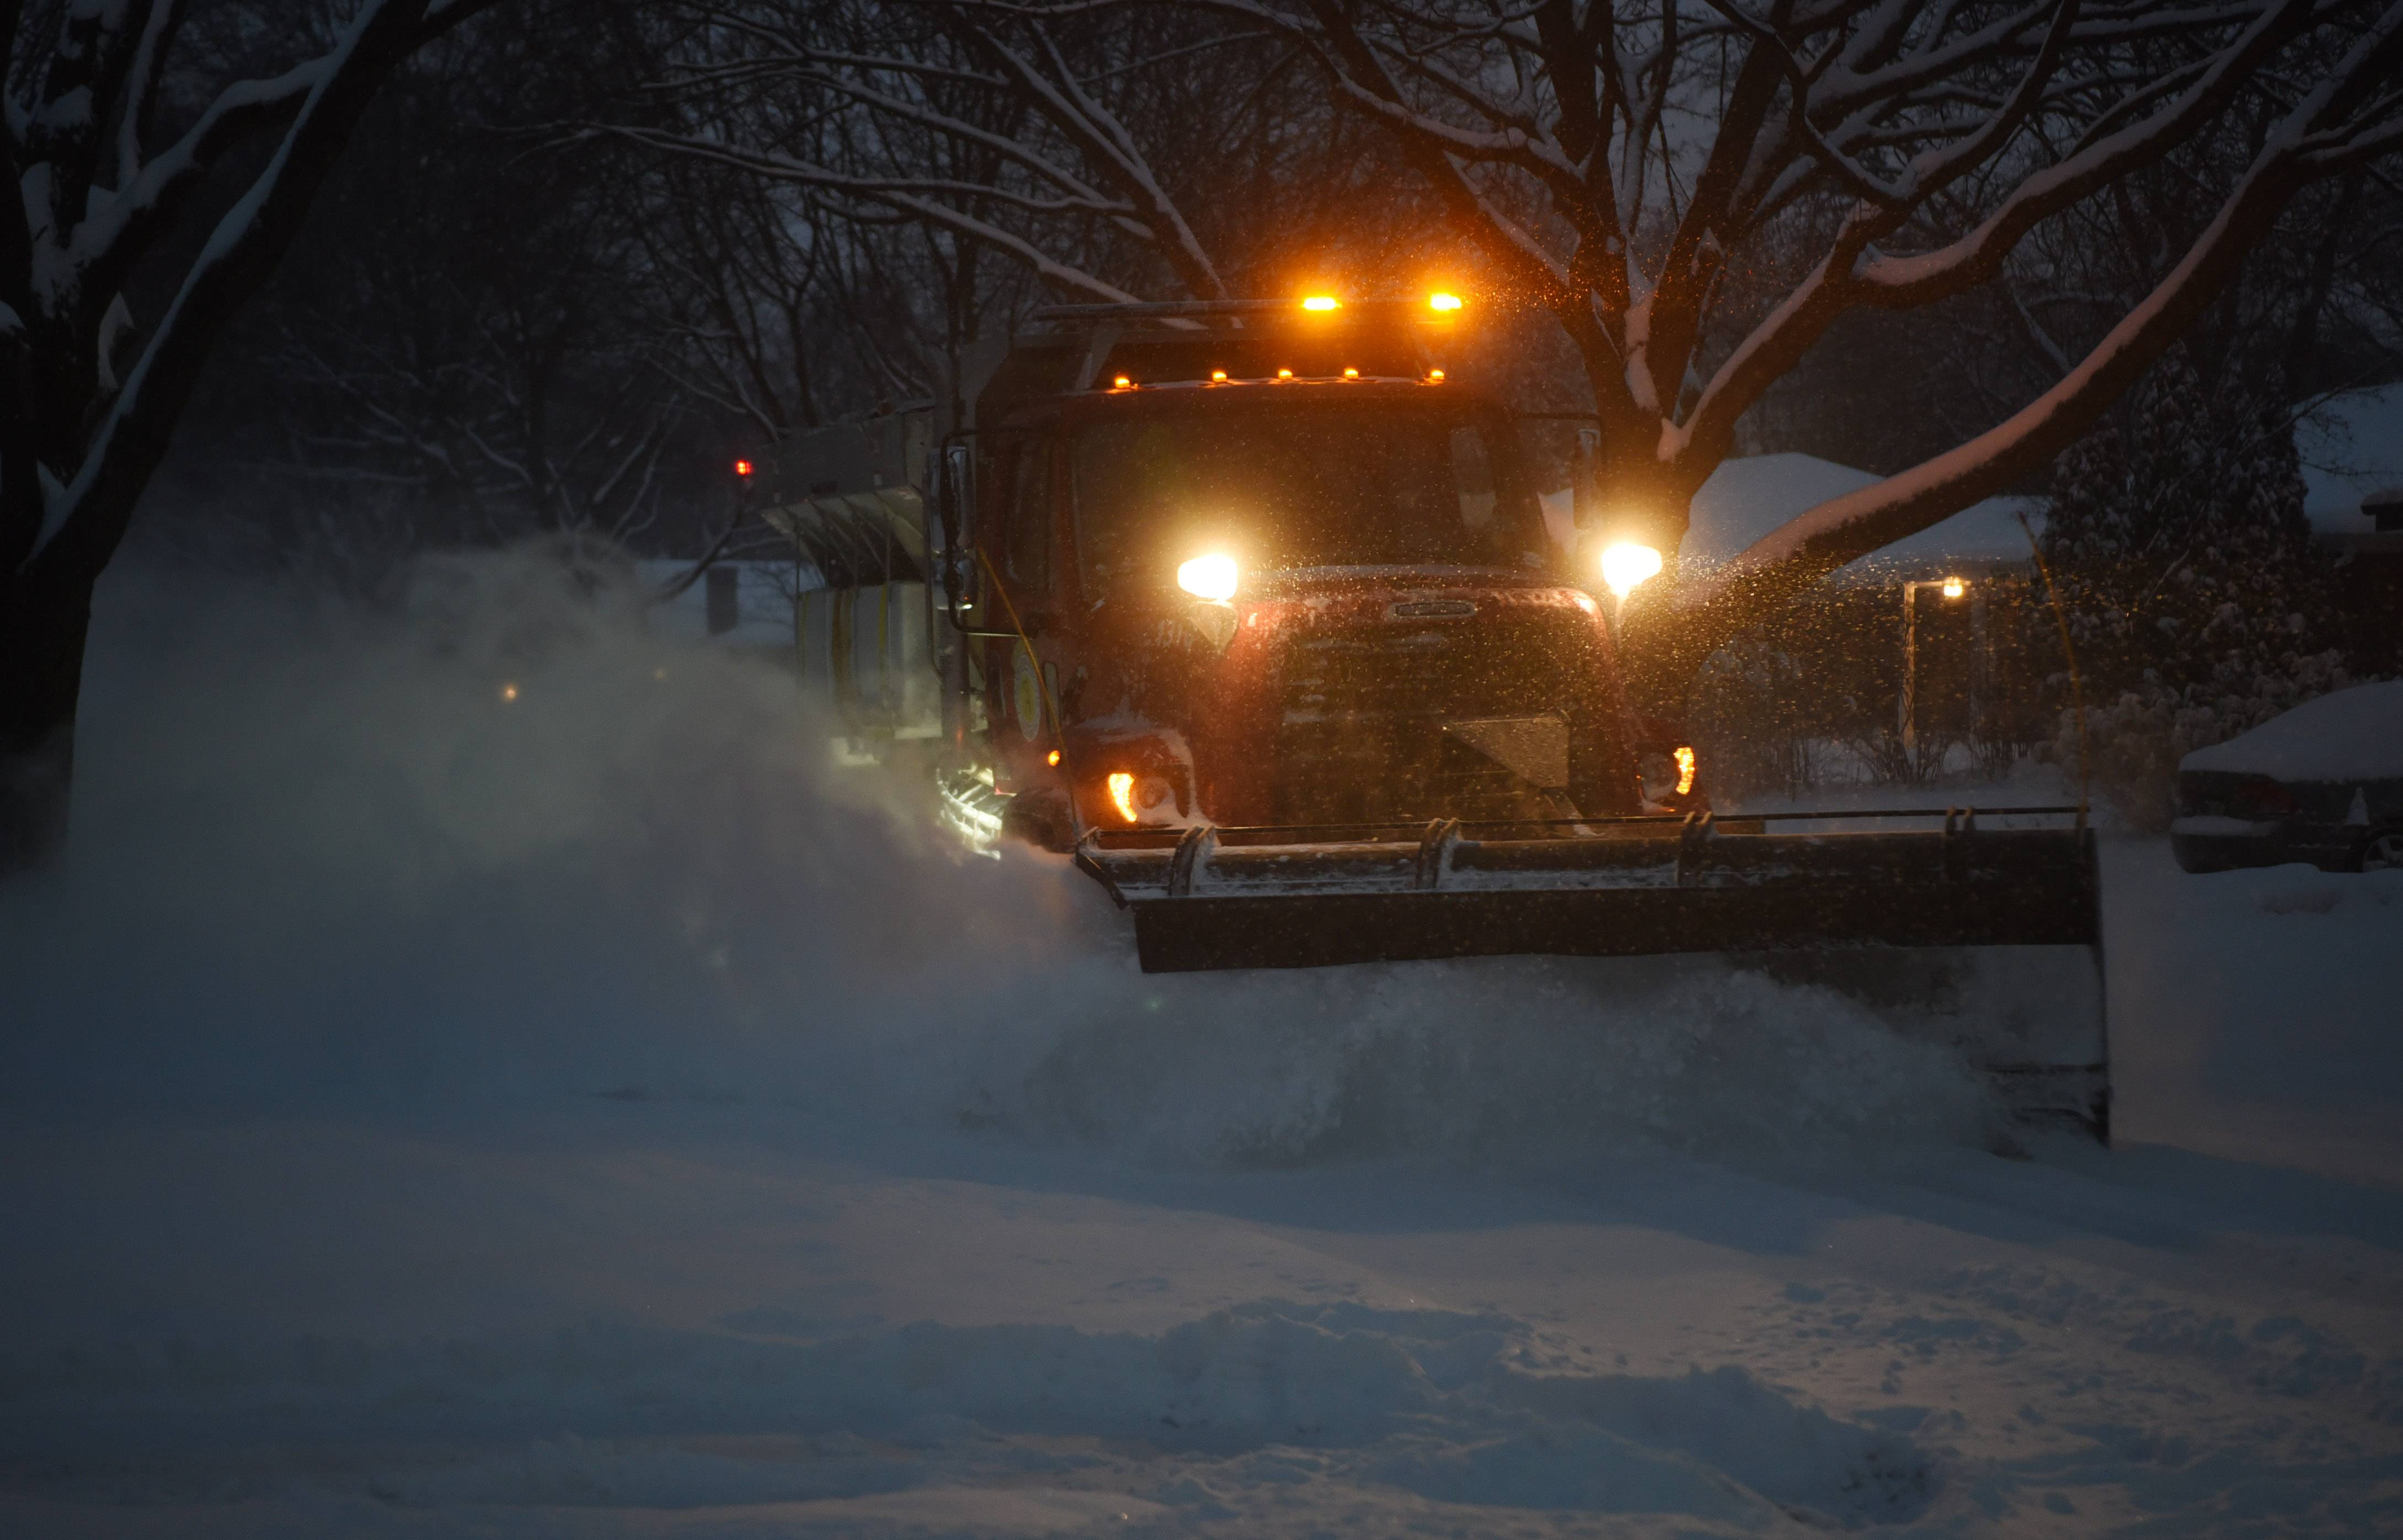 One fatality in suburbs linked to snowfall